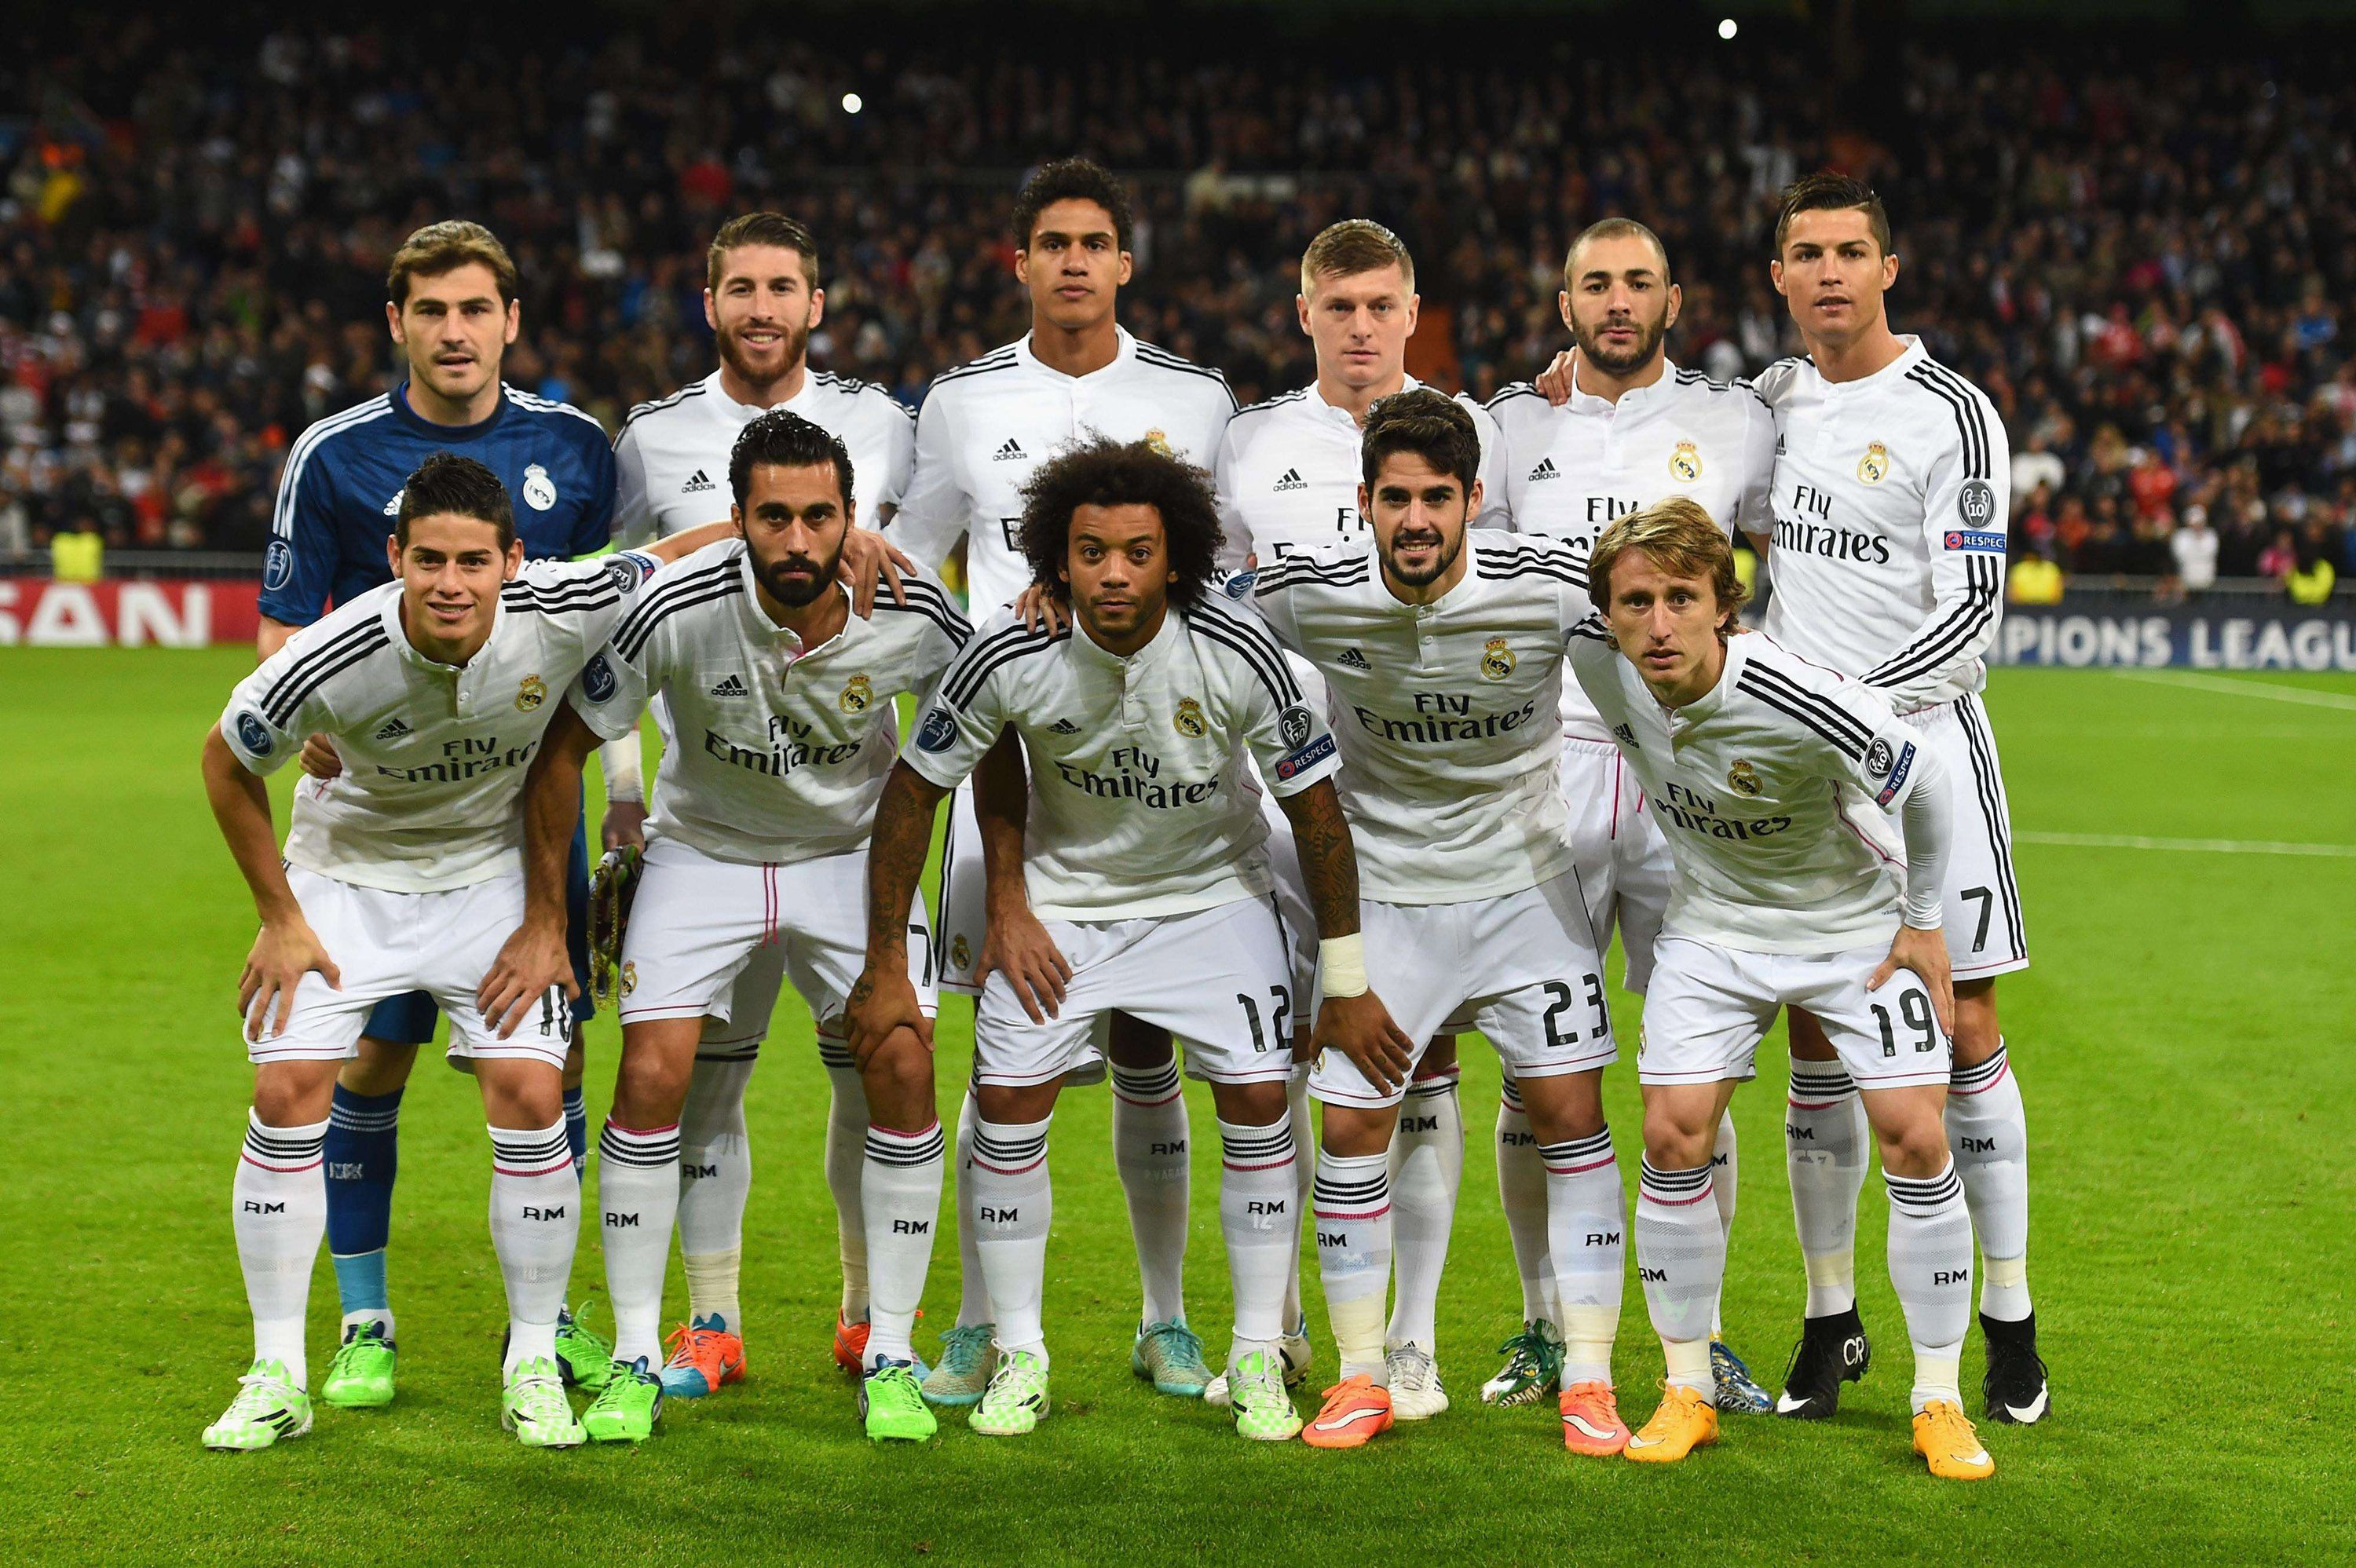 Real Madrid Pictures Wallpaper Team Players And Names For 2014 2015